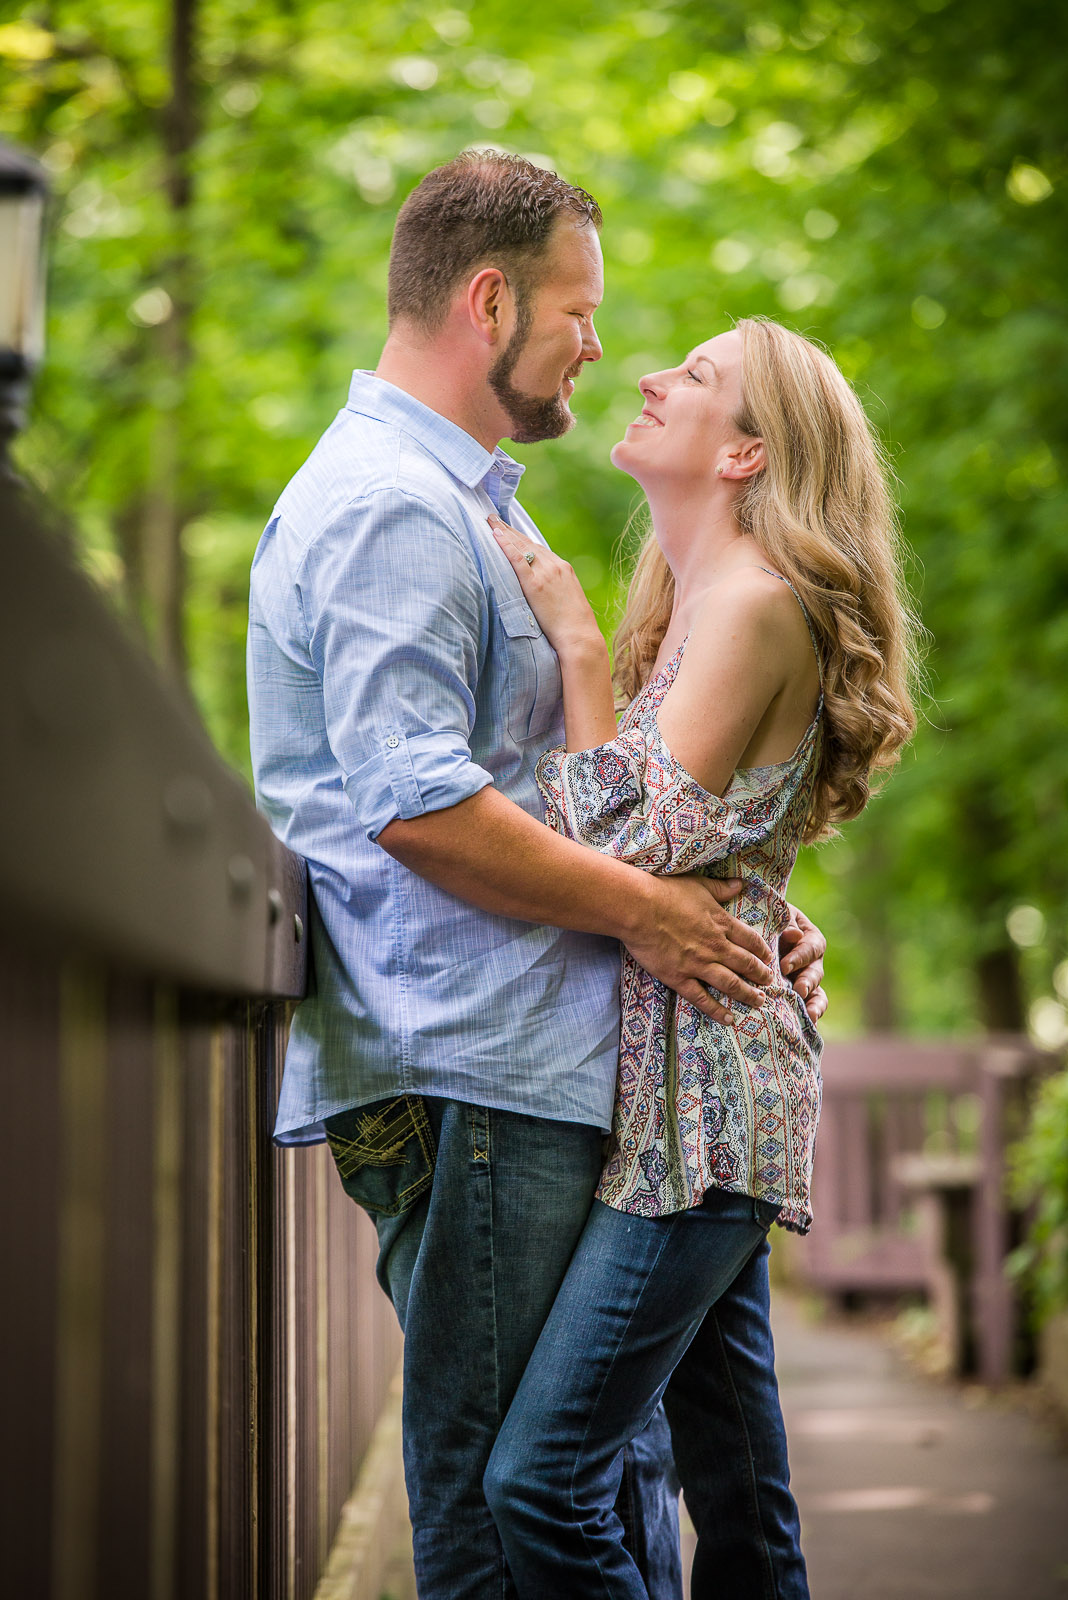 Eric_and_Christy_Photography_Blog_Kelly_Matt_Engagement-11